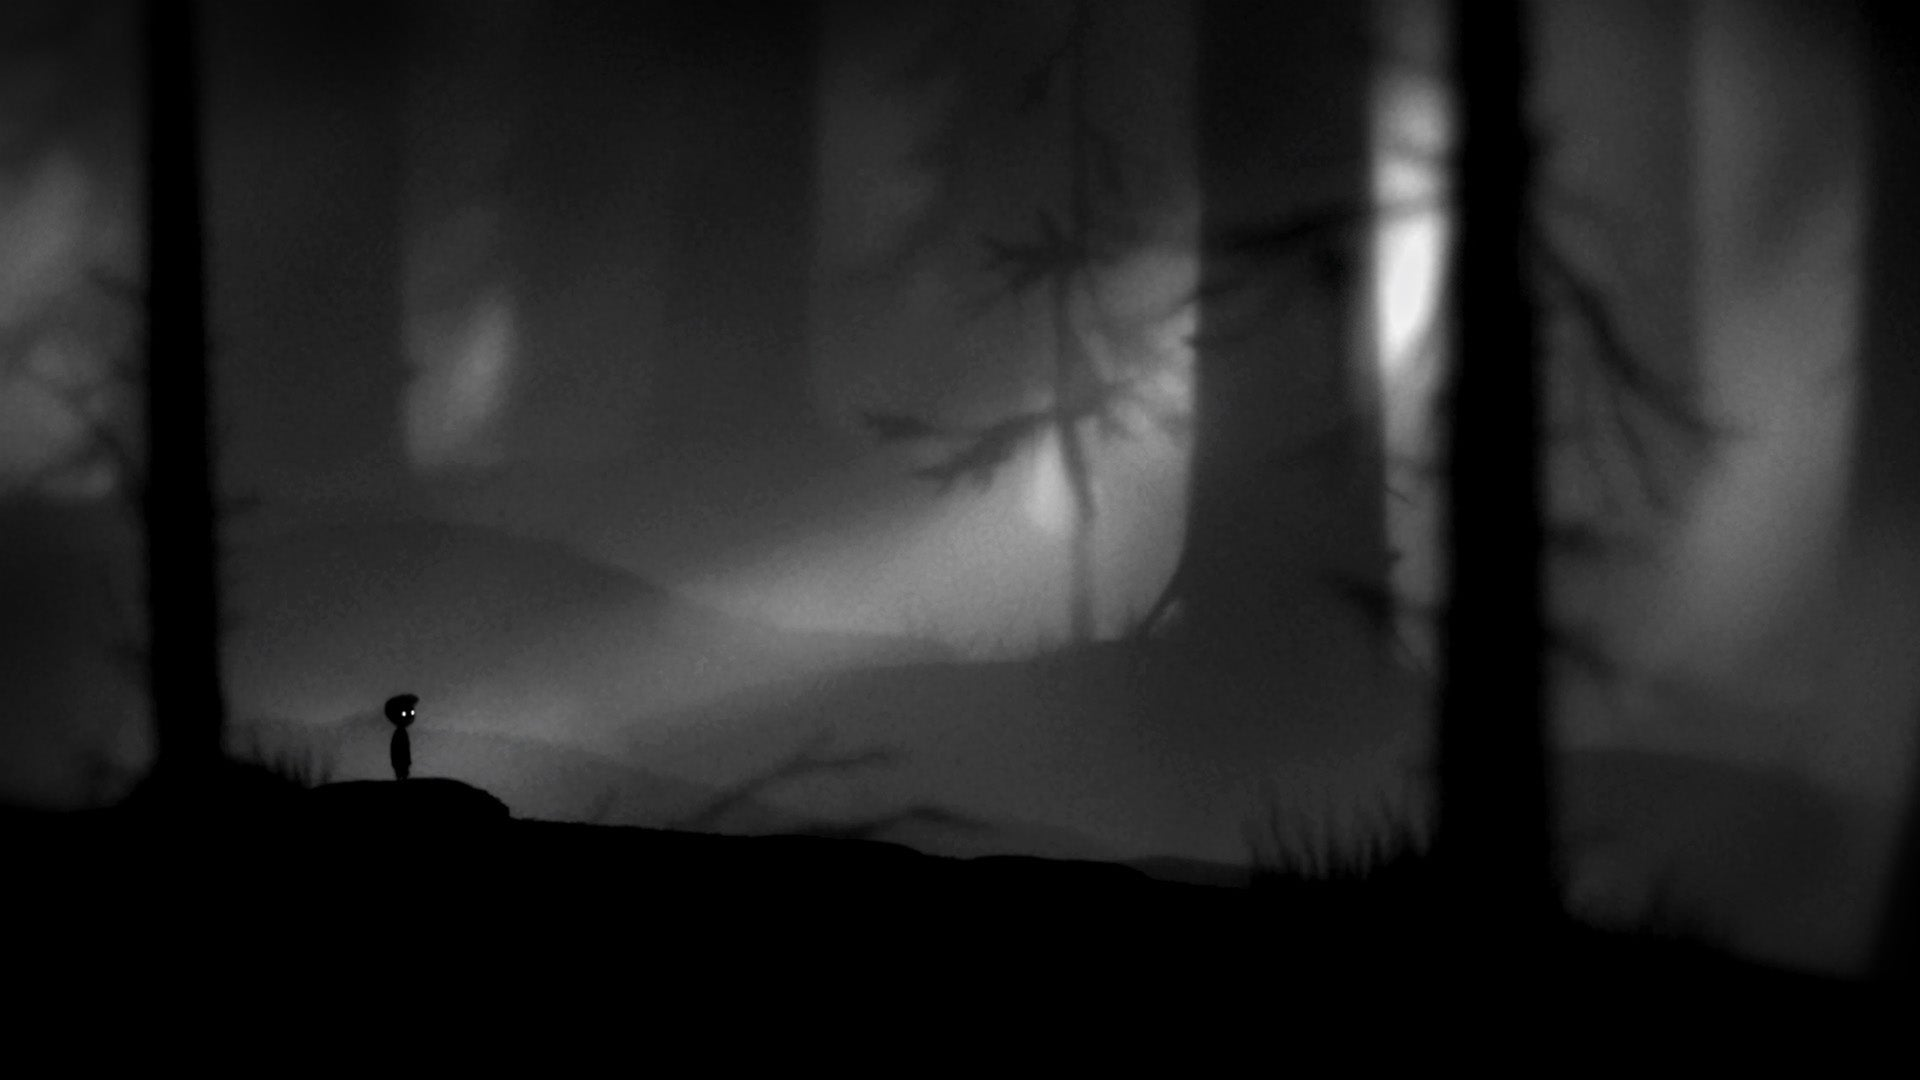 A shot from Limbo by Playdead